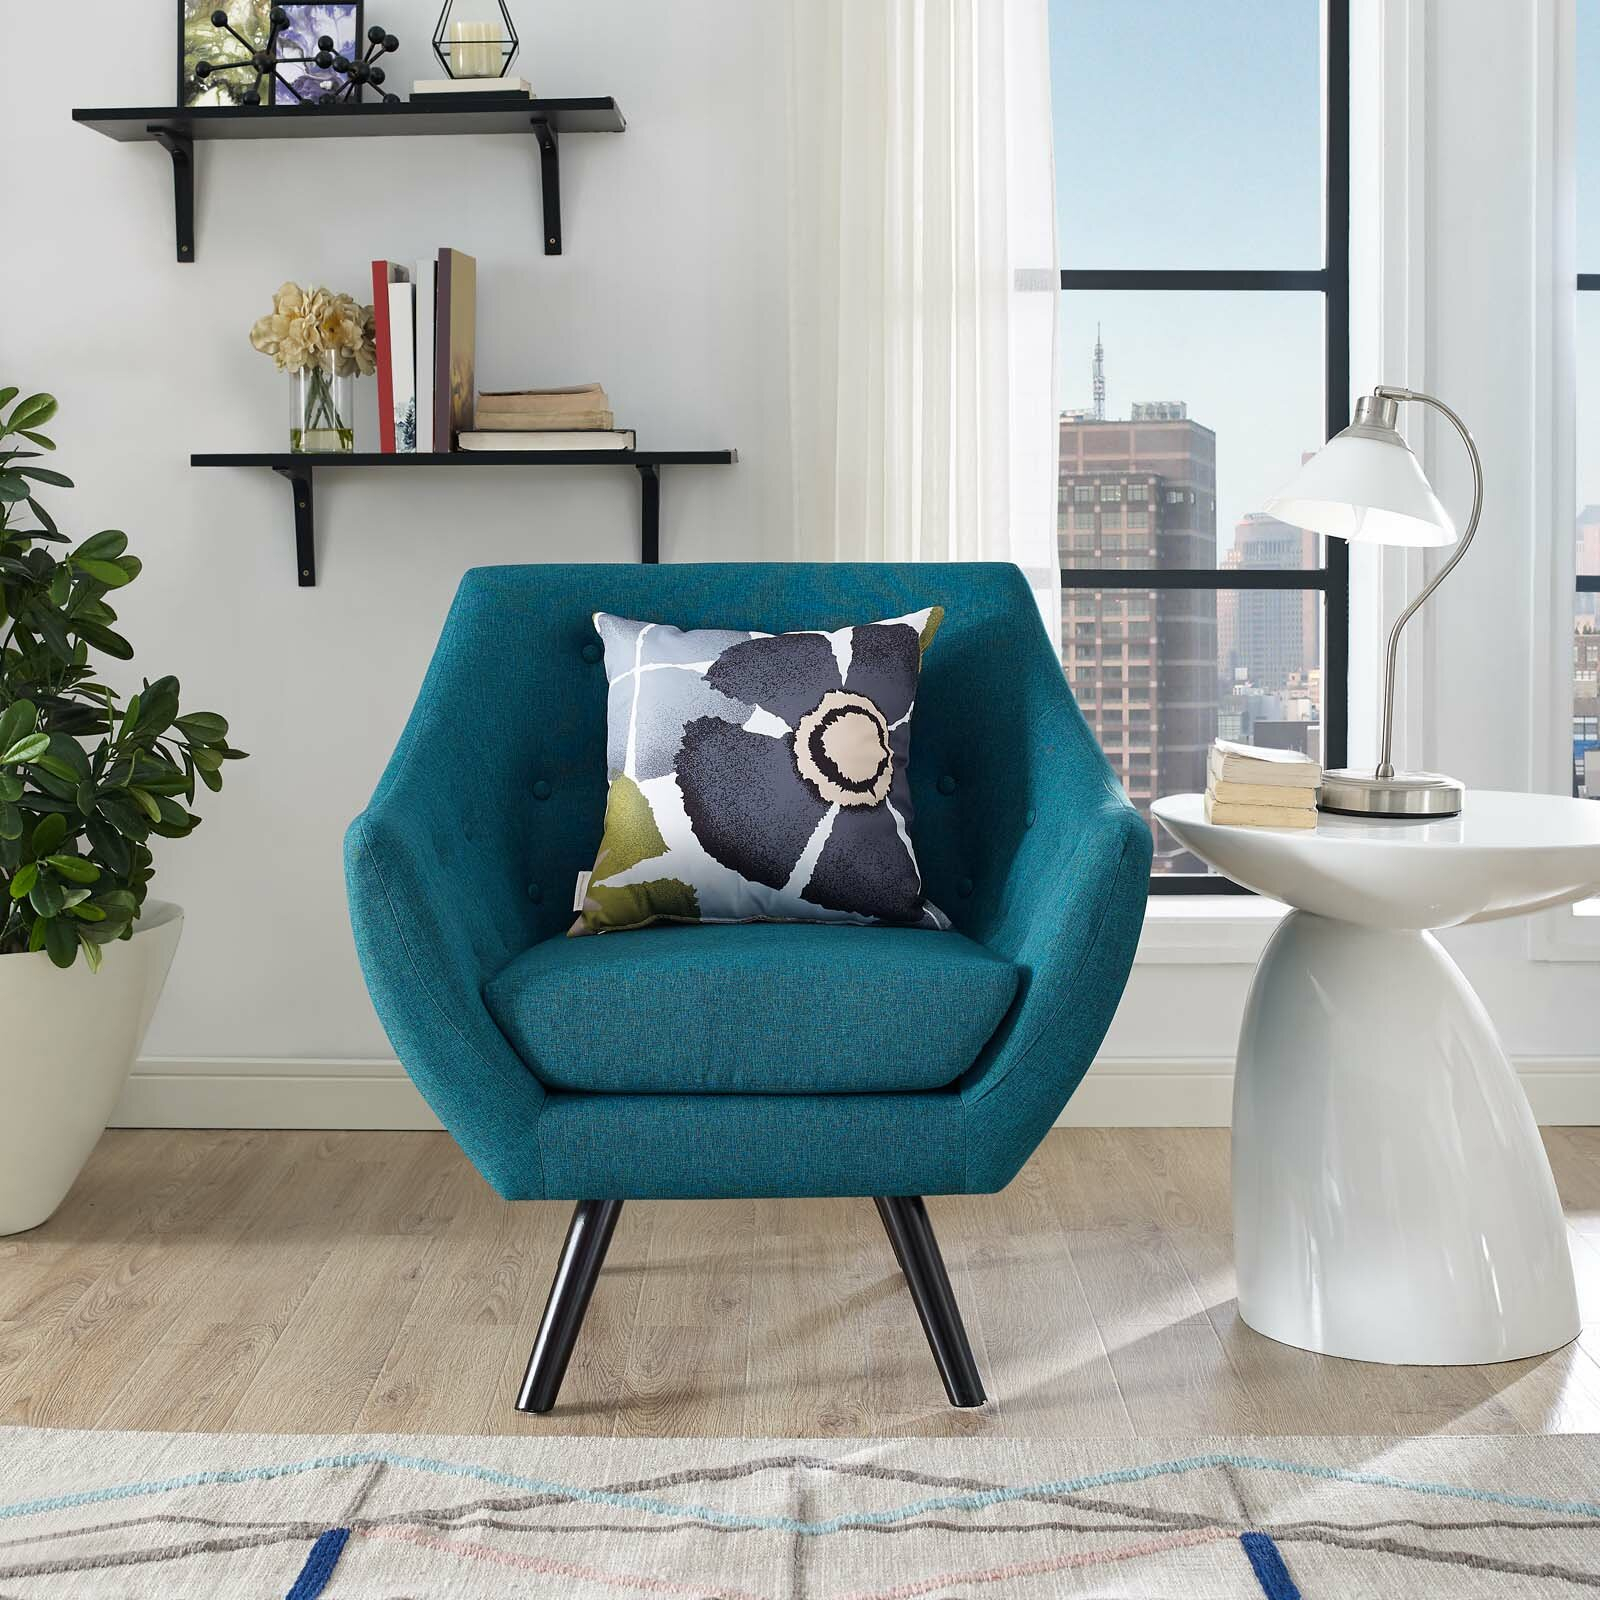 Featured Image of Giguere Barrel Chairs